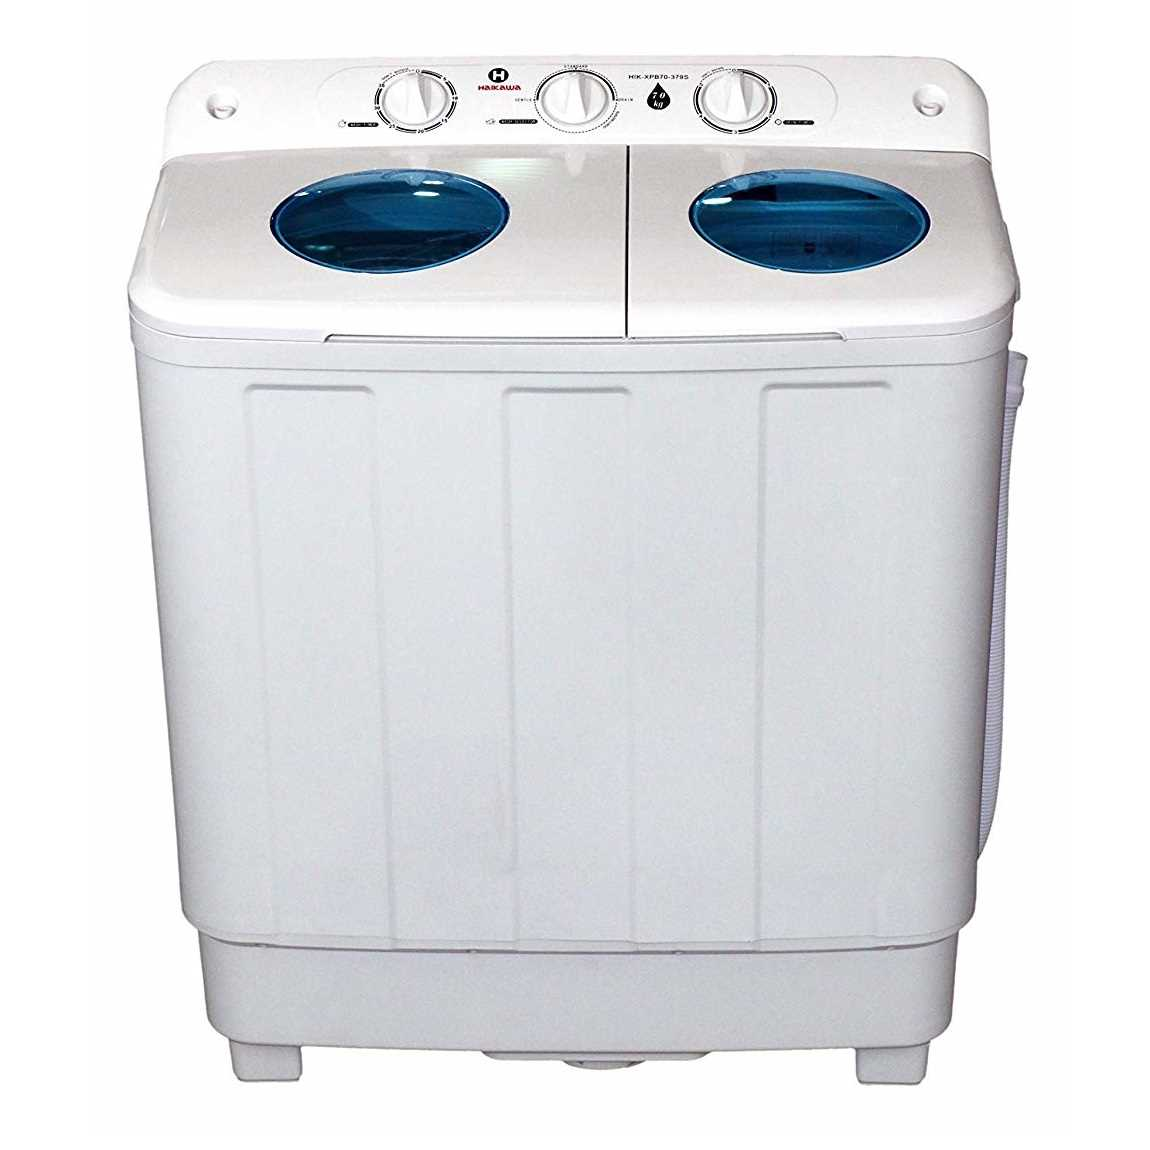 Haikawa HIK-XQB70-379S 7 Kg Semi Automatic Top Loading Washing Machine